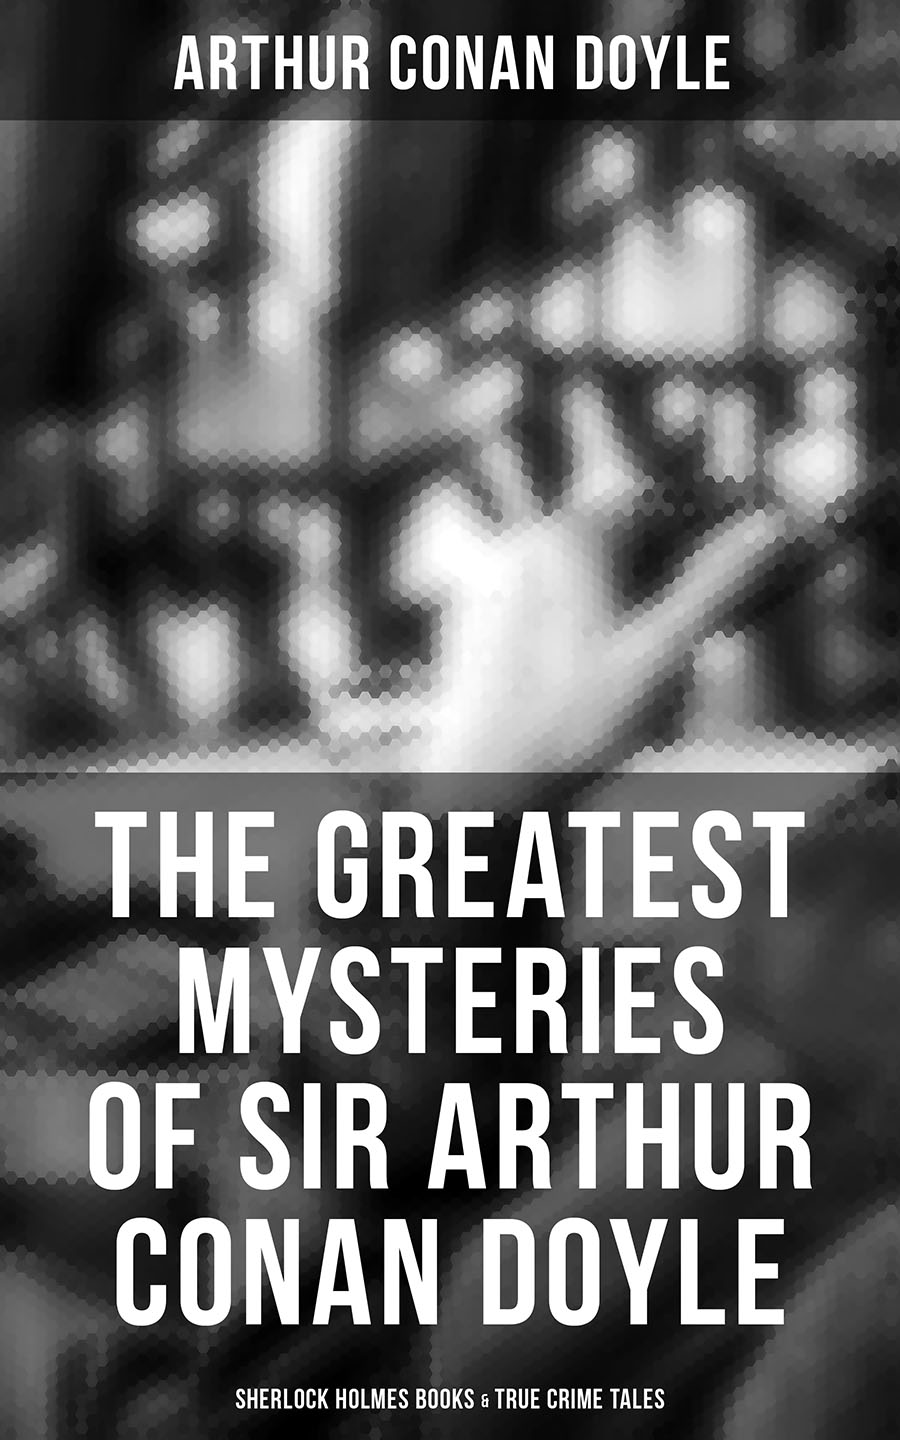 Arthur Conan Doyle The Greatest Mysteries of Sir Arthur Conan Doyle: Complete Sherlock Holmes Series, True Crime Tales & Supernatural Cases цена и фото